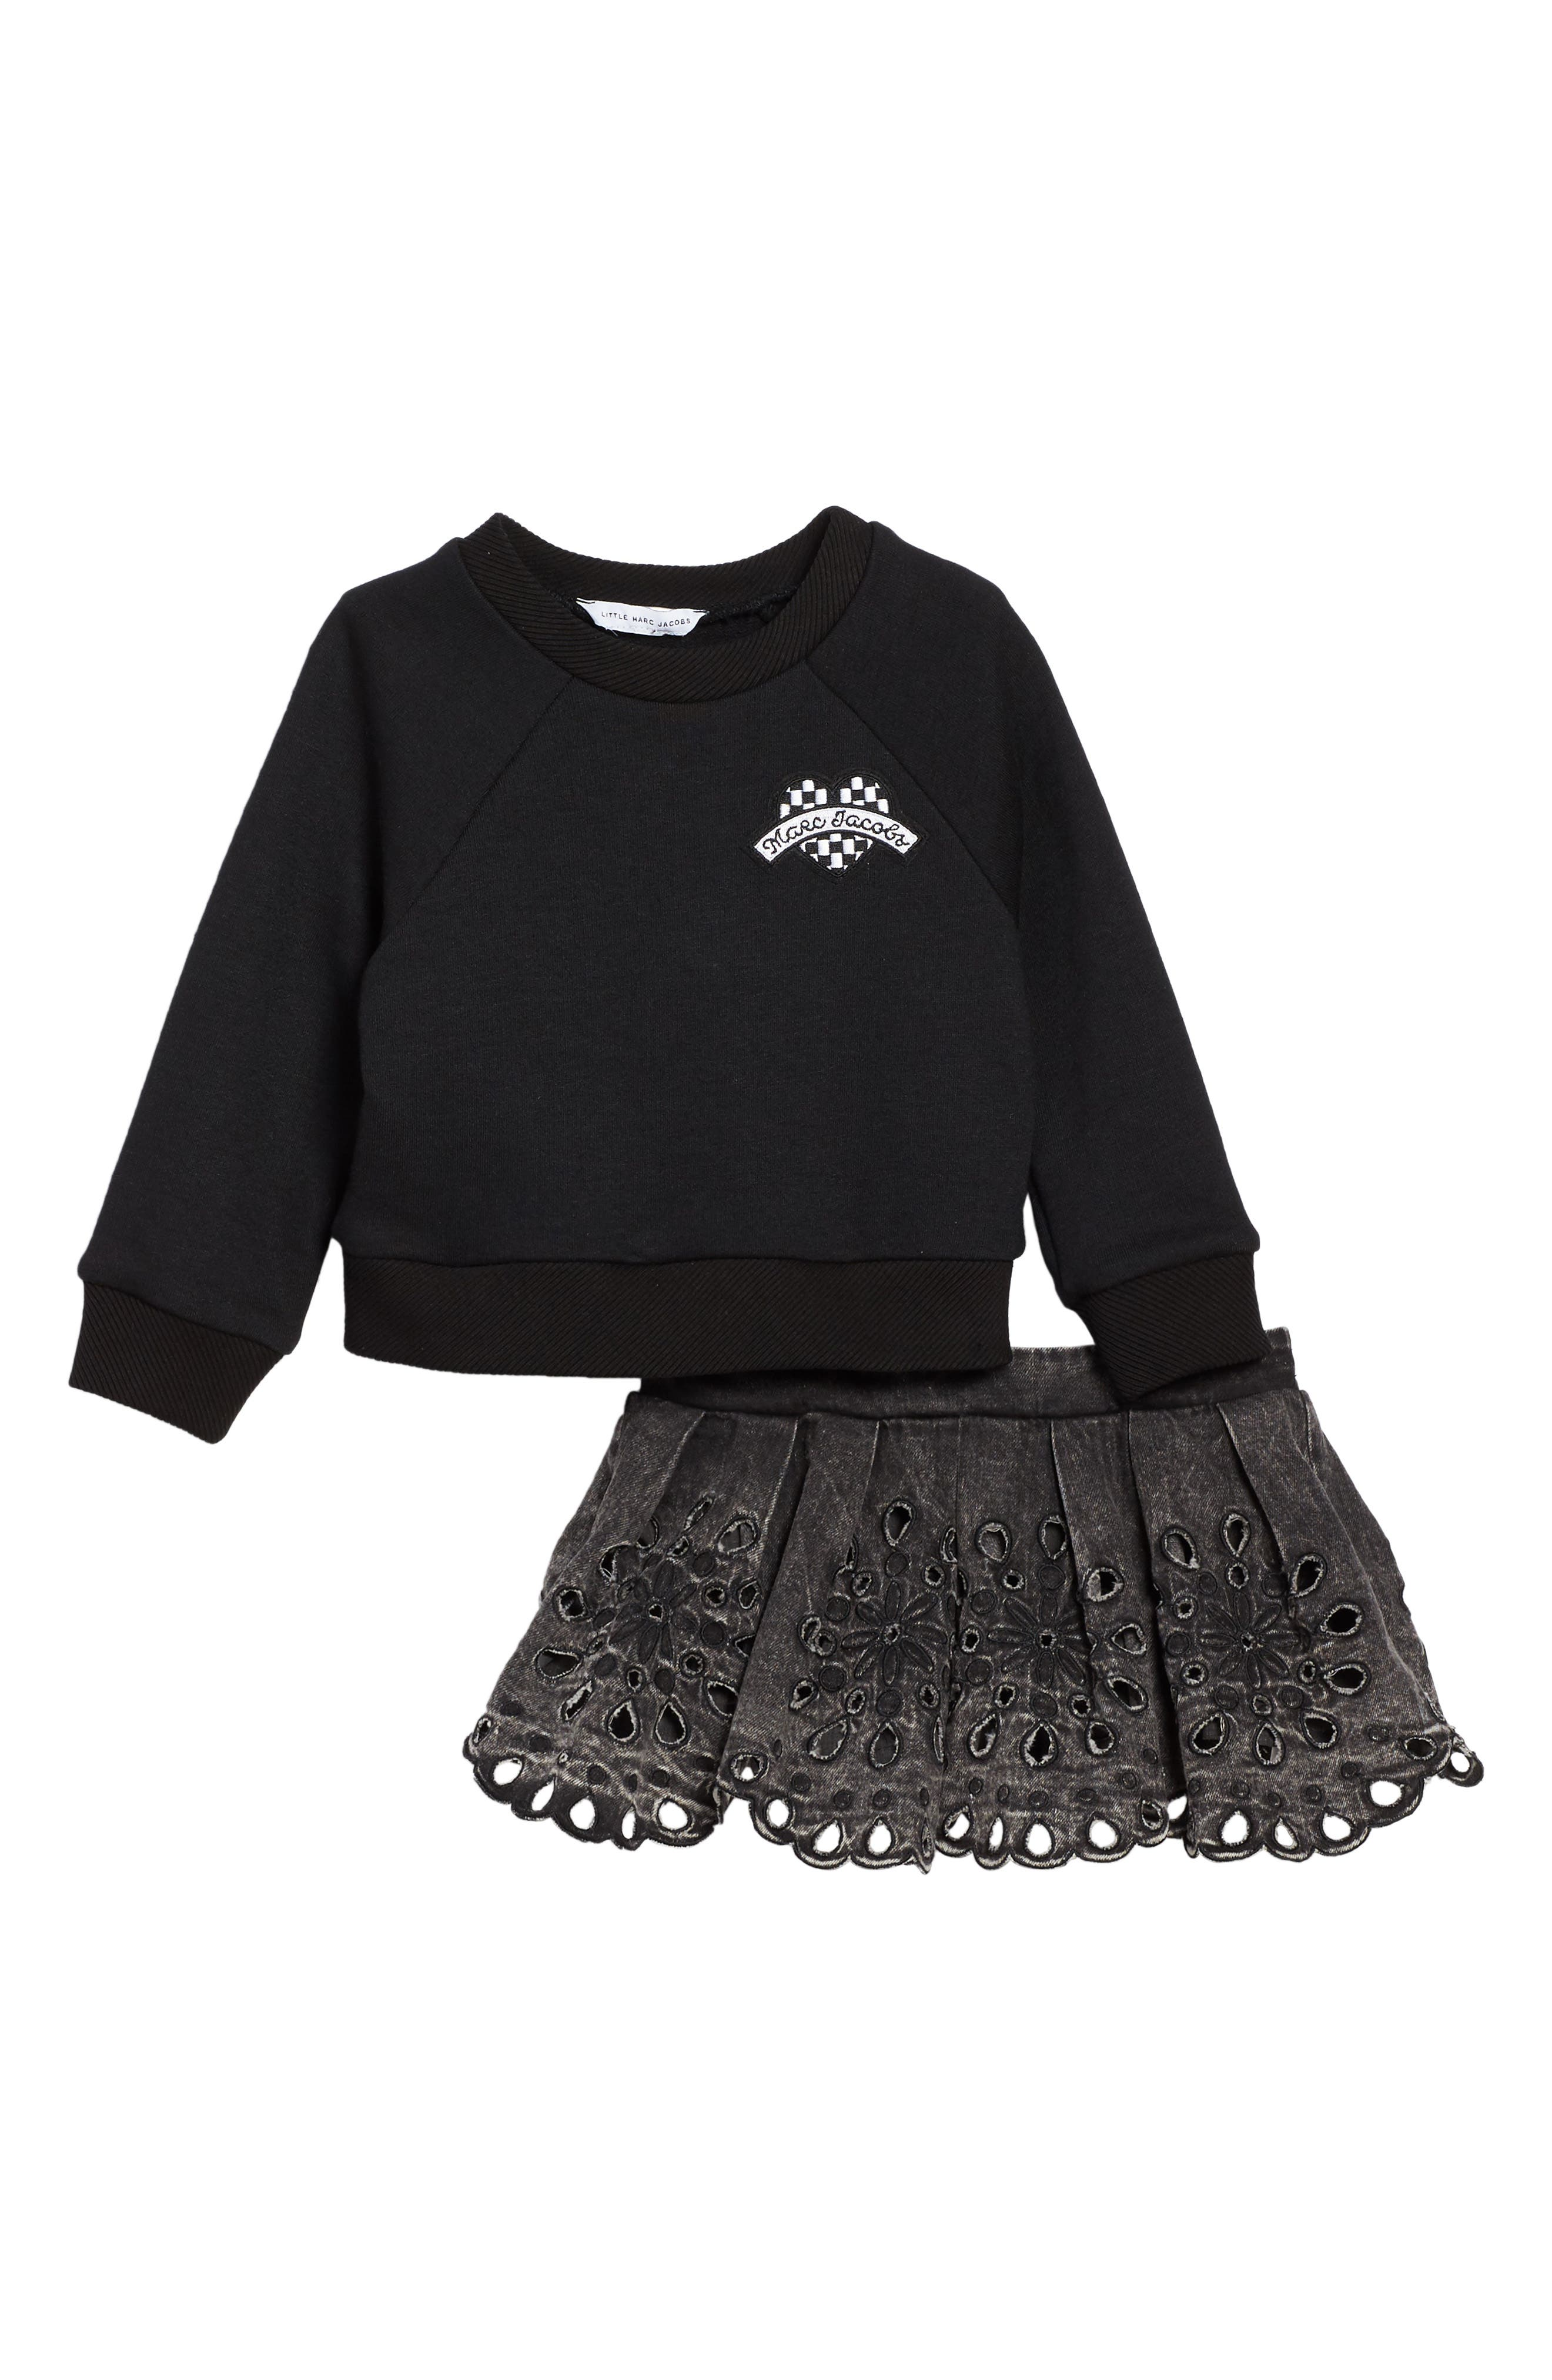 Sweatshirt & Skirt Set,                             Alternate thumbnail 2, color,                             001